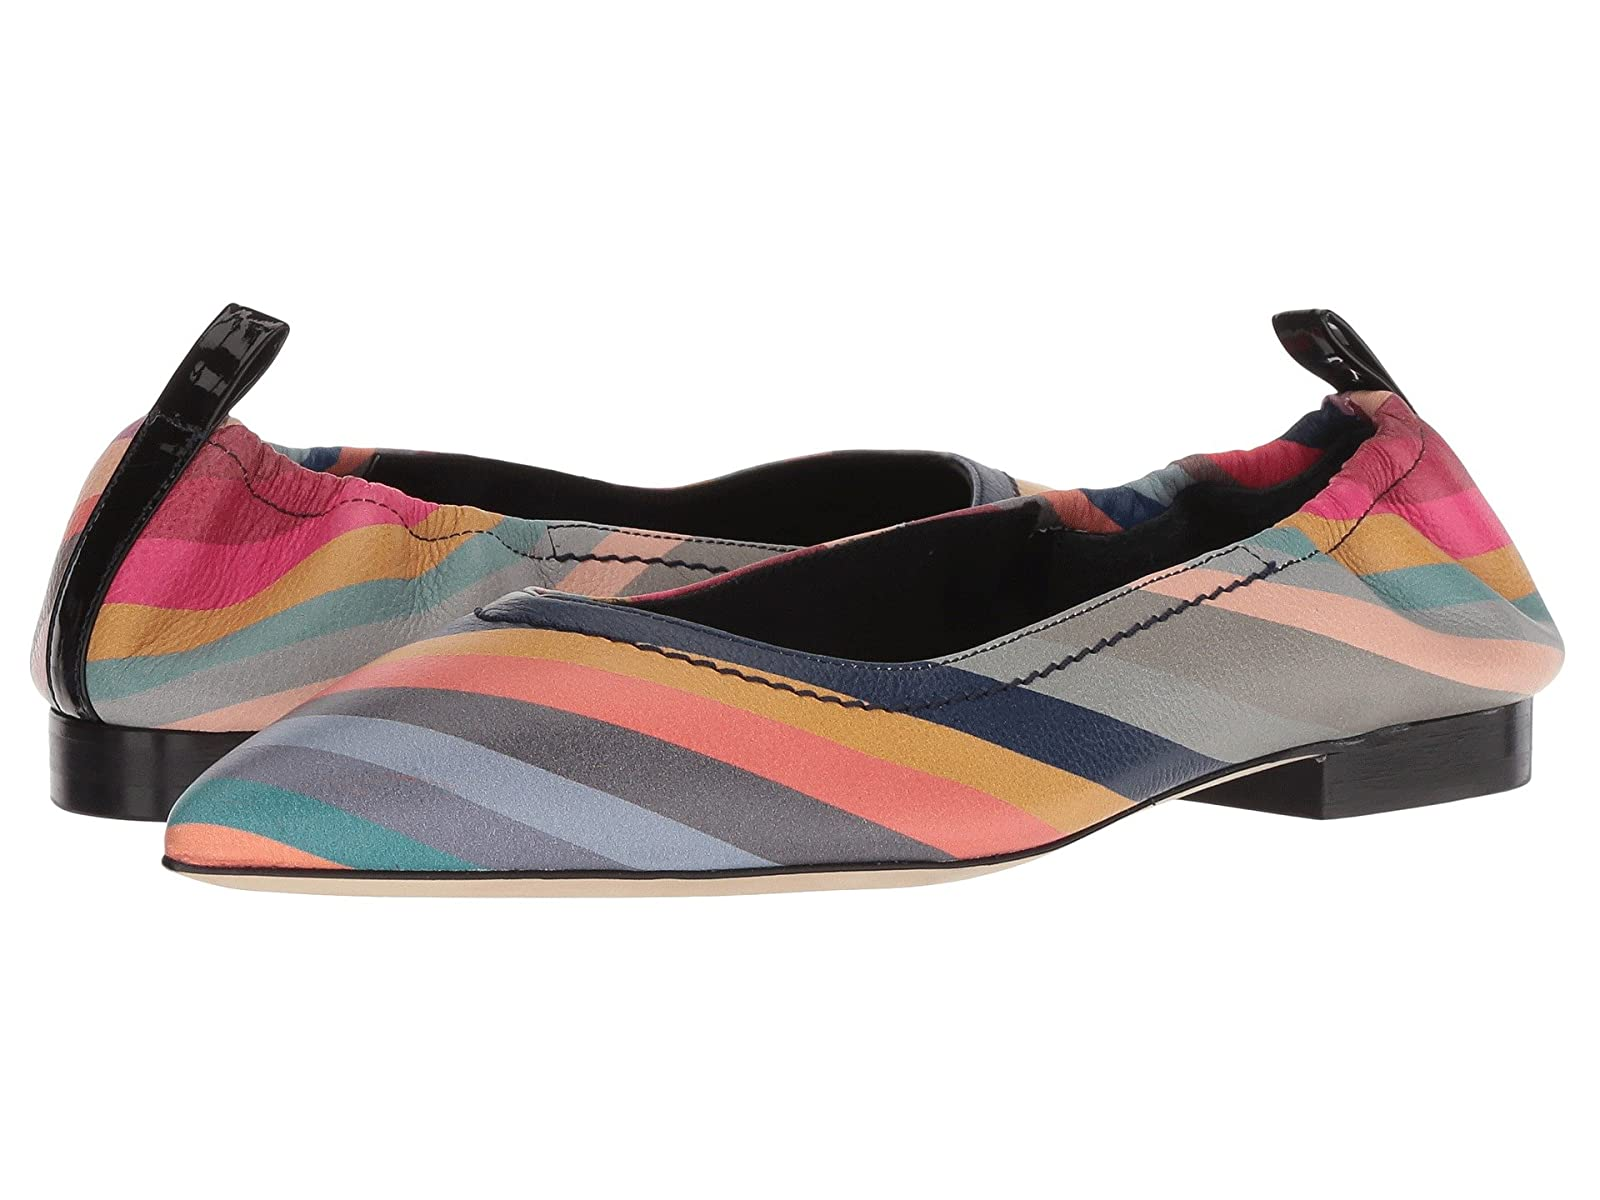 Men's/Women's:Paul Smith Lima Flat:Fast Flat:Fast Flat:Fast delivery 13150a